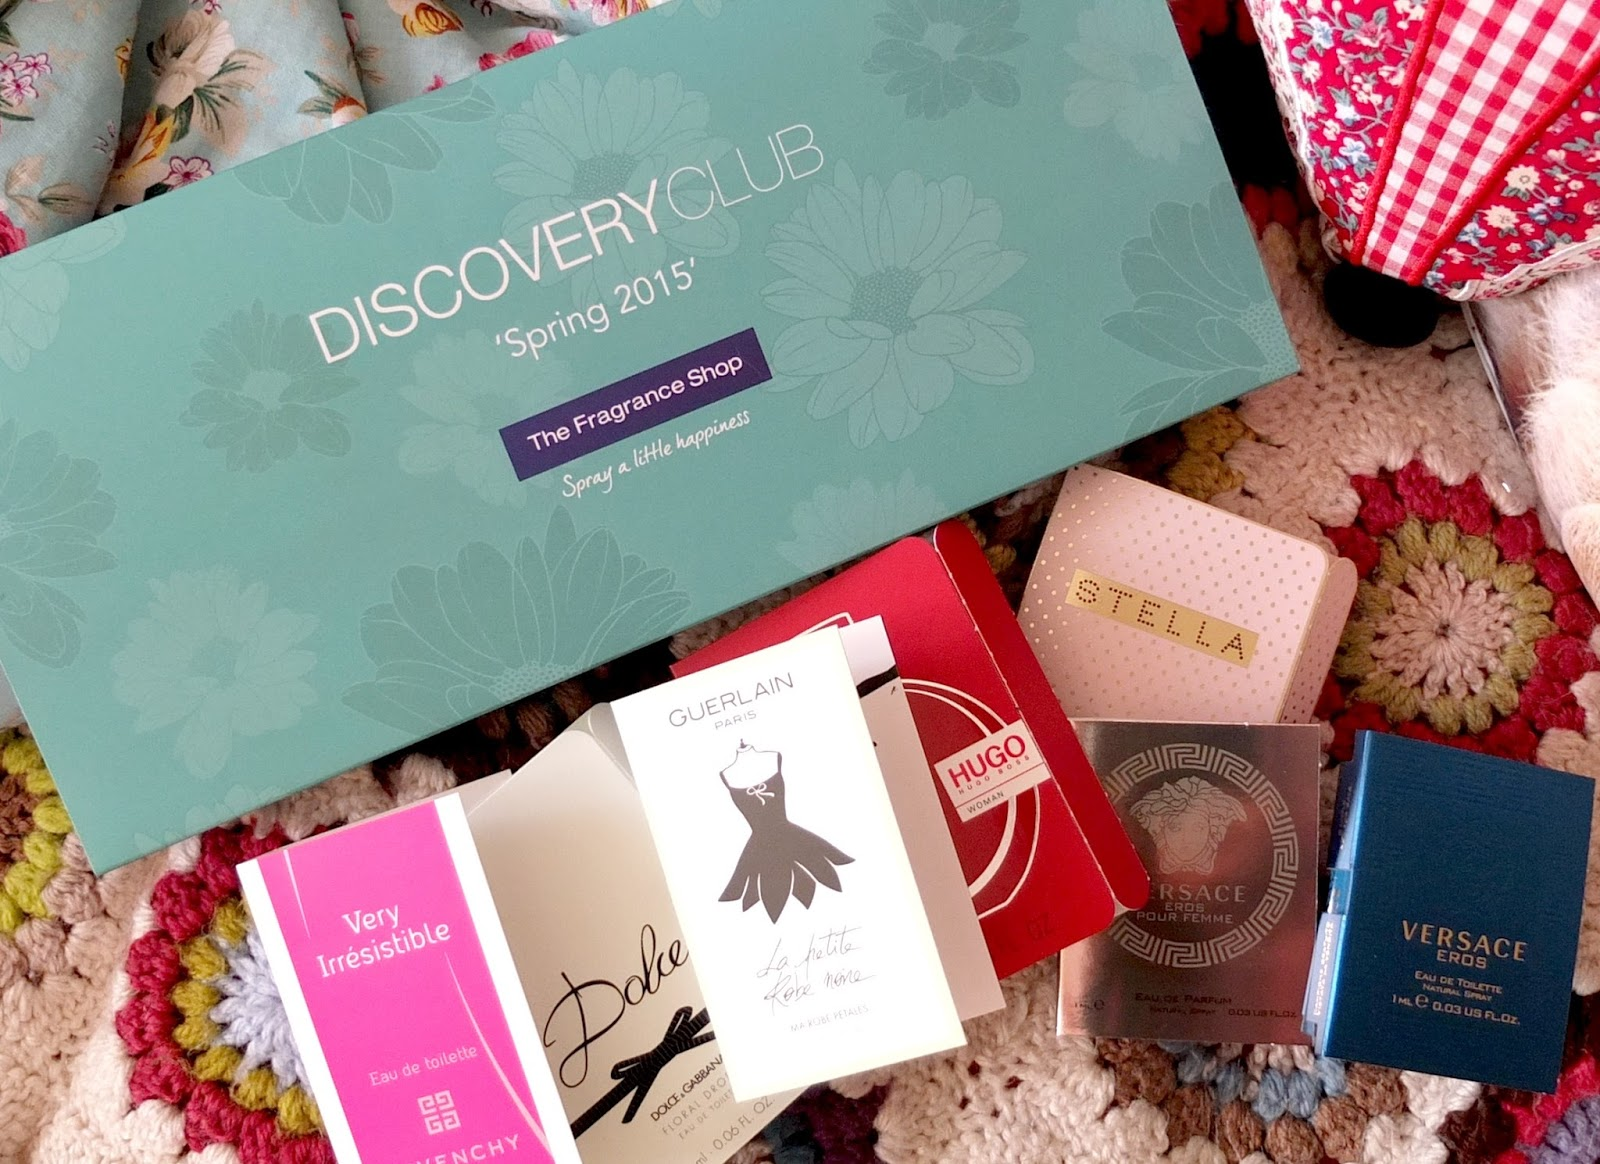 the fragrance shop discovery club perfume subscription box on hello terri lowe UK beauty blog.